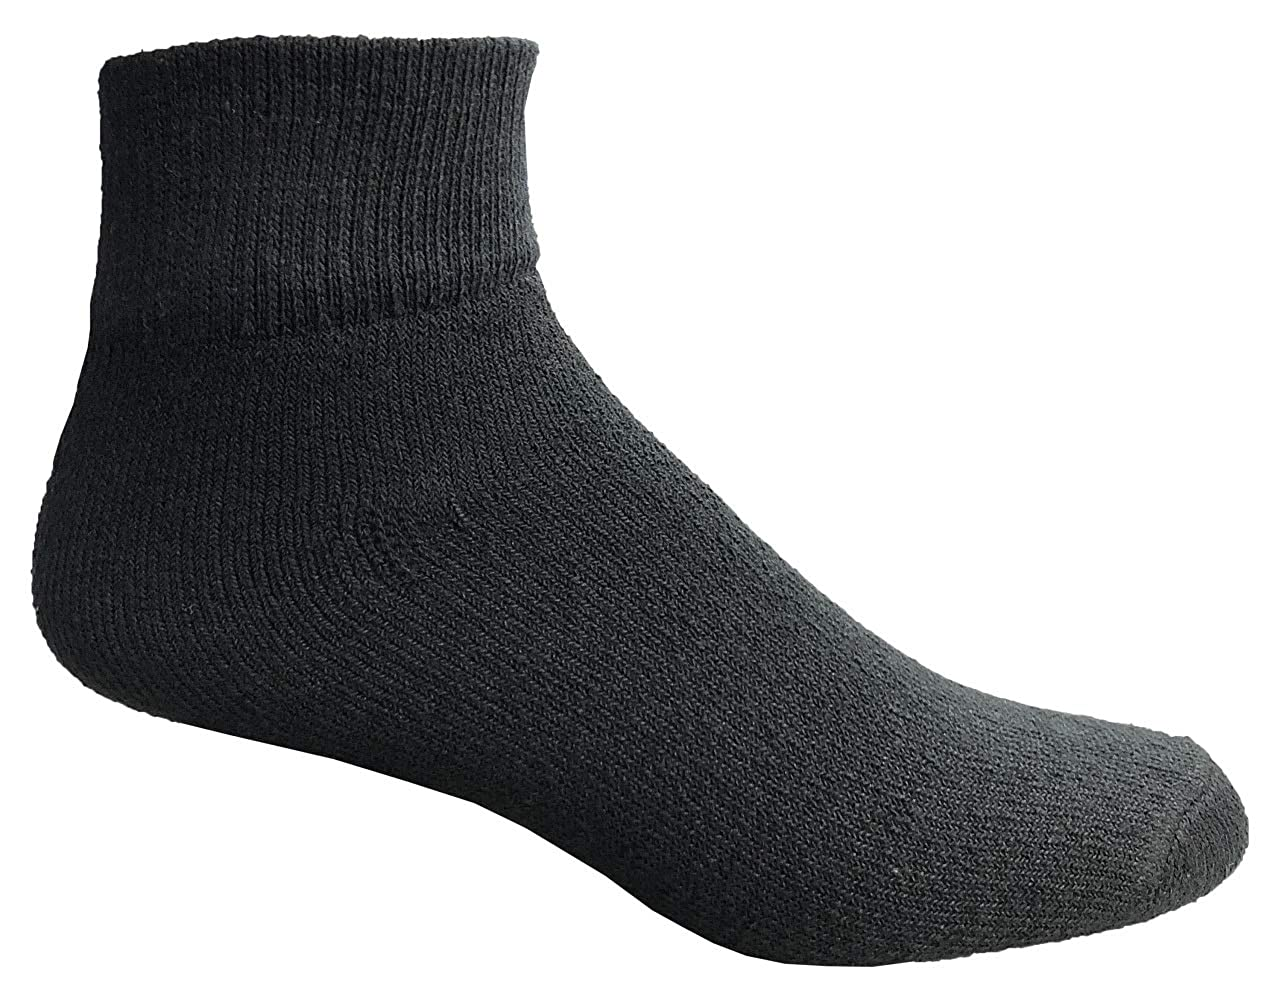 Yacht /& Smith Mens /& Womens Ankle Wholesale Bulk Pack Athletic Sports Socks by SOCKSNBULK